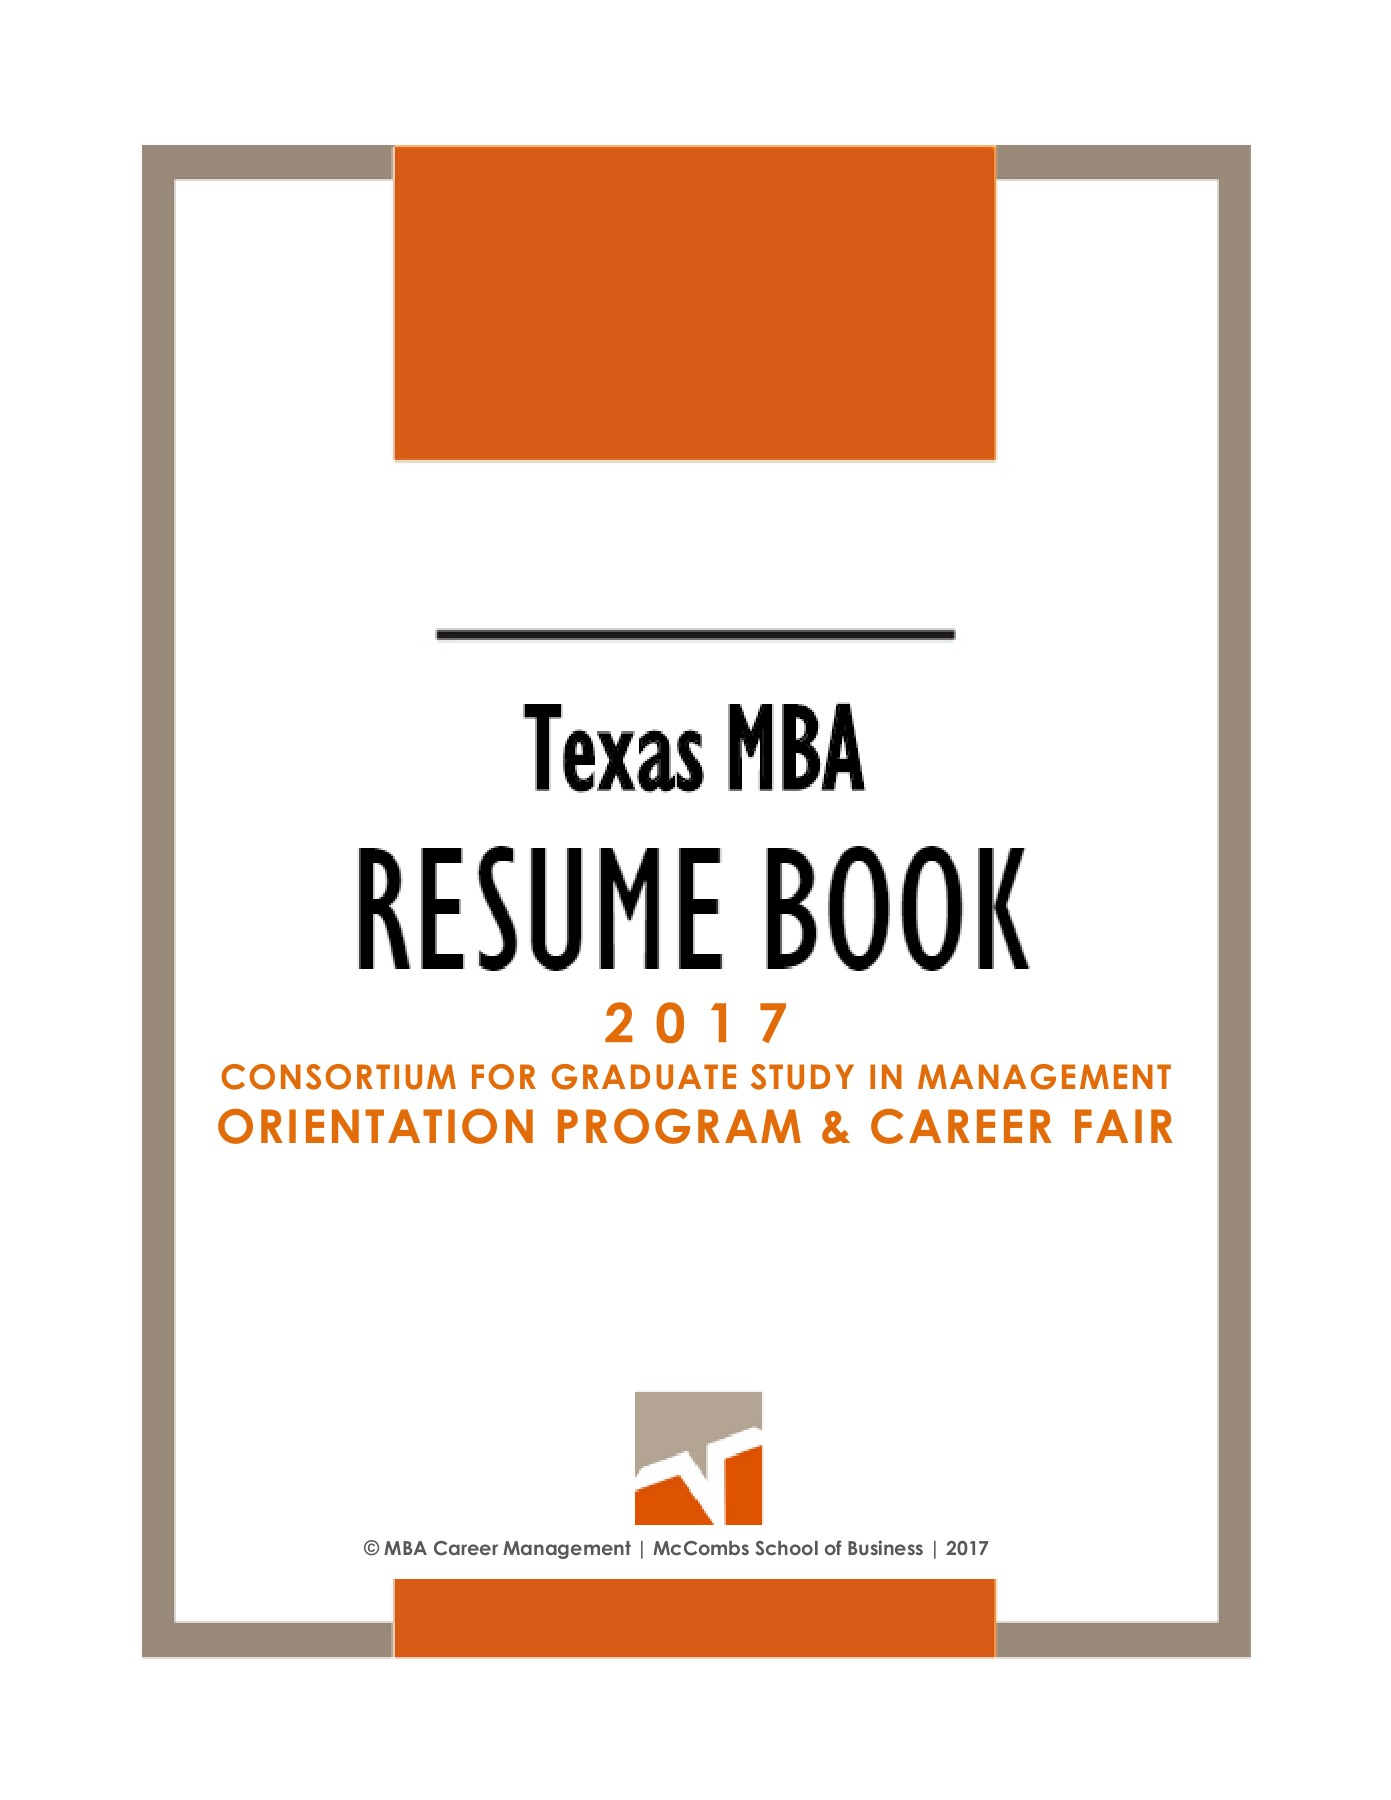 TexasMBA CGSM RESUME BOOK 2017 Pages 1 - 35 - Text Version | AnyFlip